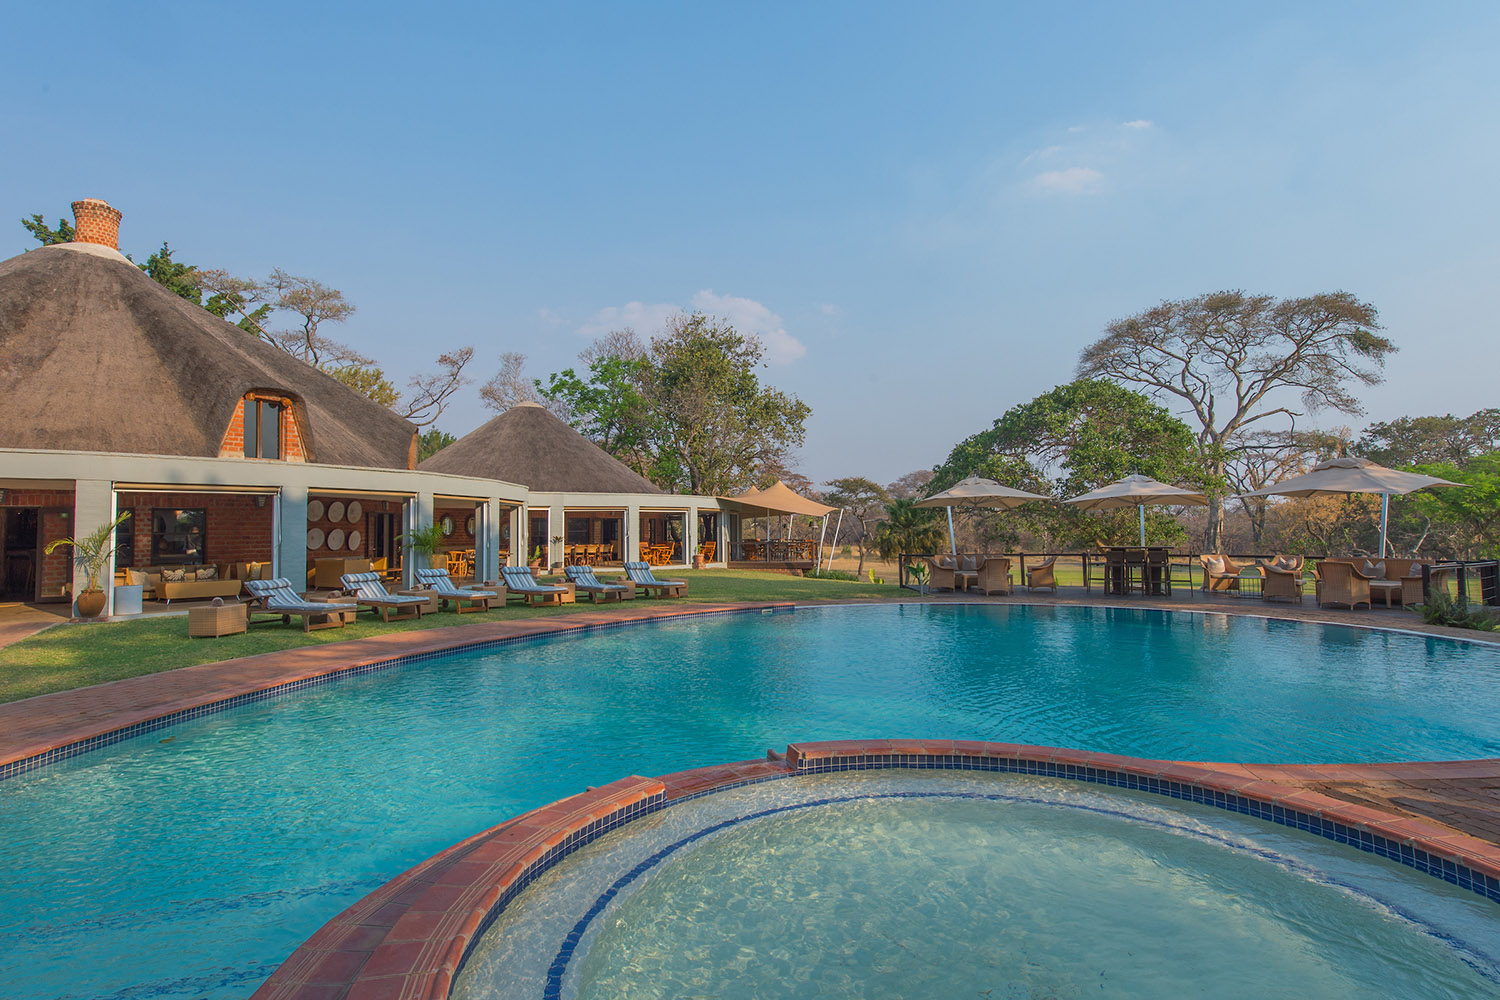 lilayi lodge zambia-in-style-tours-safari-packages-lodges-lusaka-swimming-pool